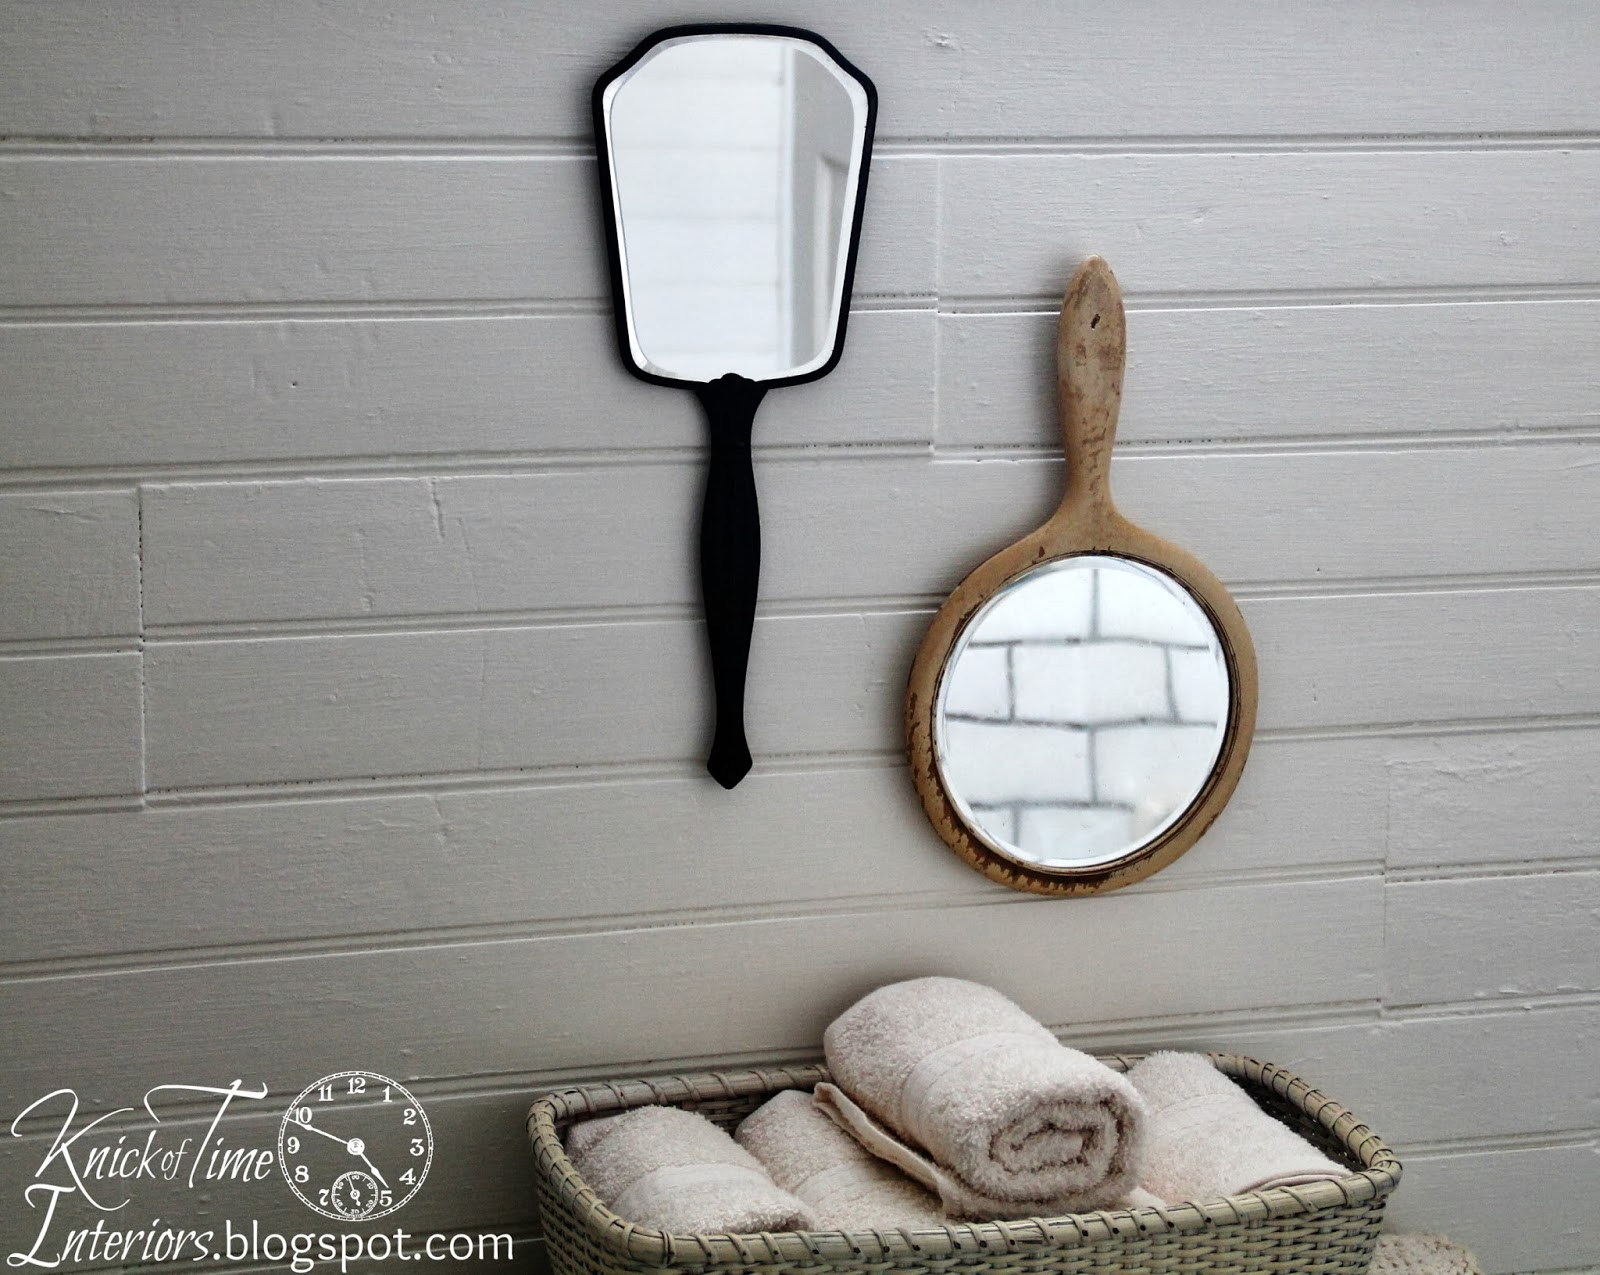 Antique-Hand-Mirrors-Farmhouse-Bathroom-Remodel-Knick of Time